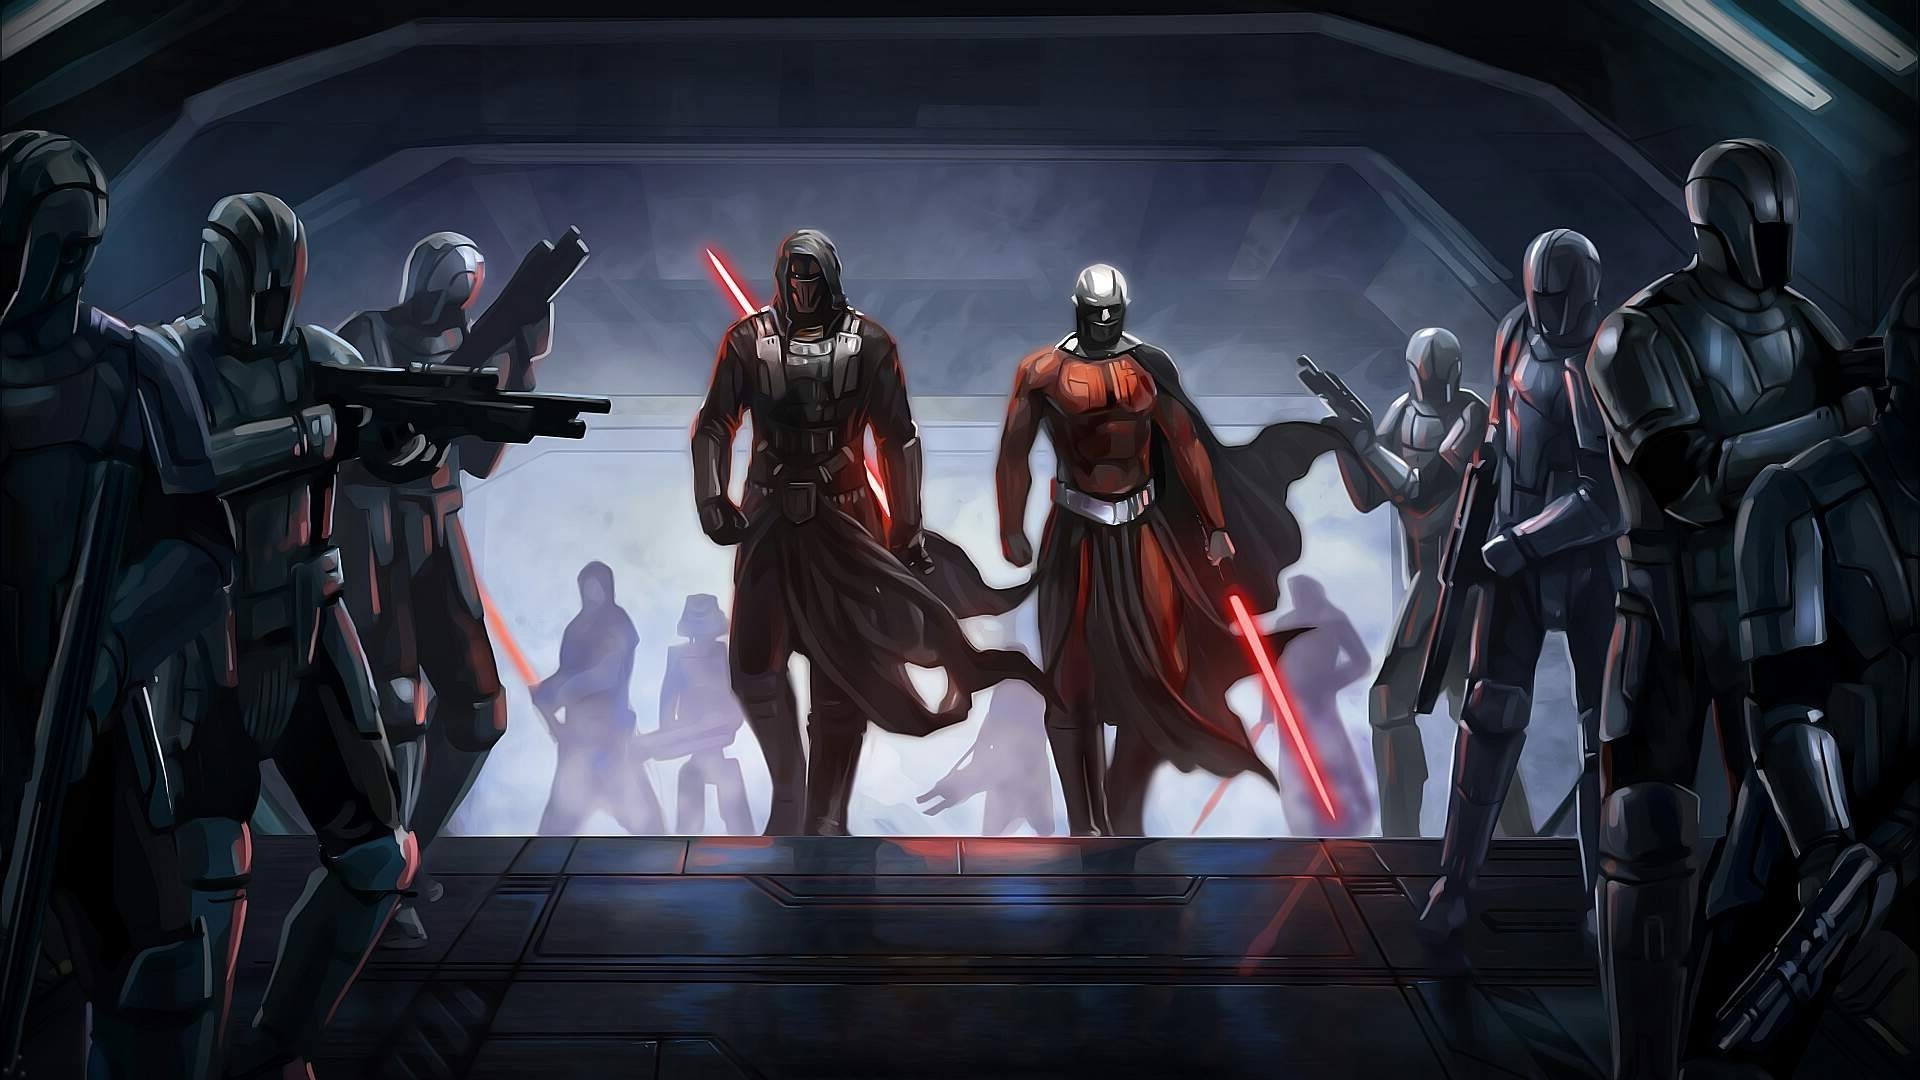 1920x1080 Knights of the Old Republic is Too Much for the Current Star Wars Canon -  Geek Reply